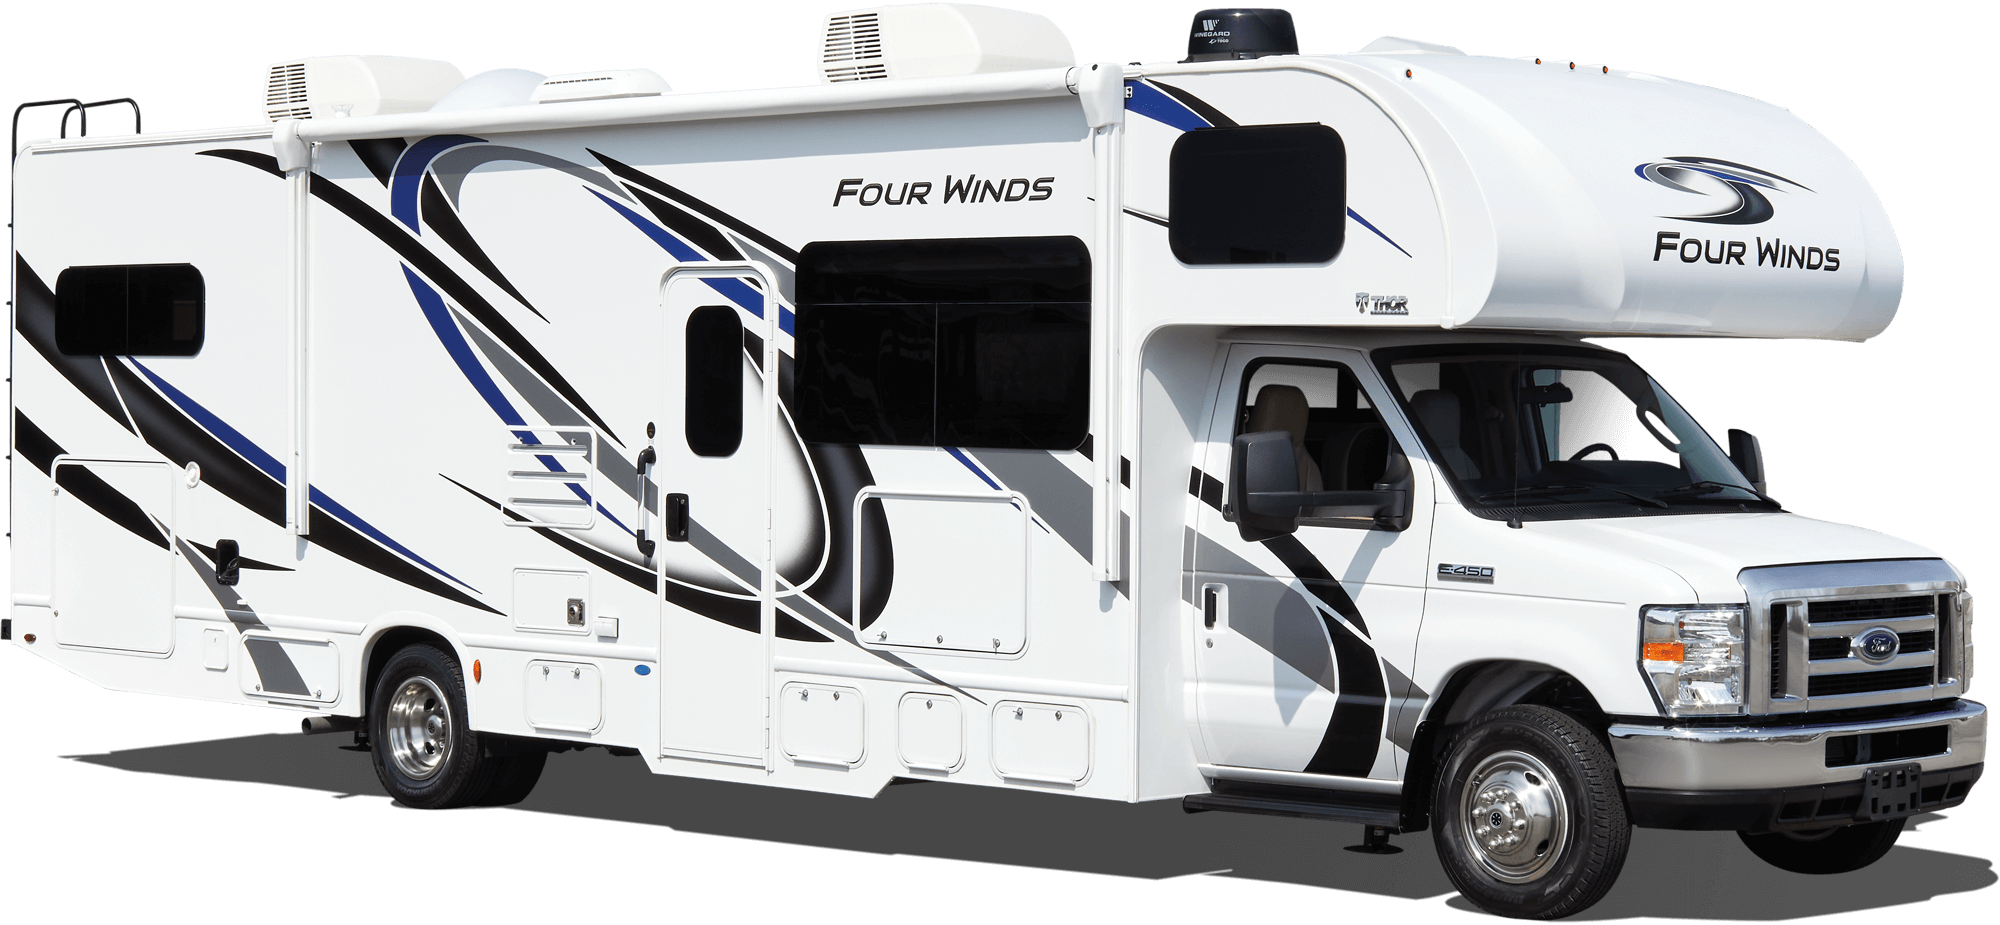 NEW 2021 THOR MOTOR COACH FOUR WINDS 24F